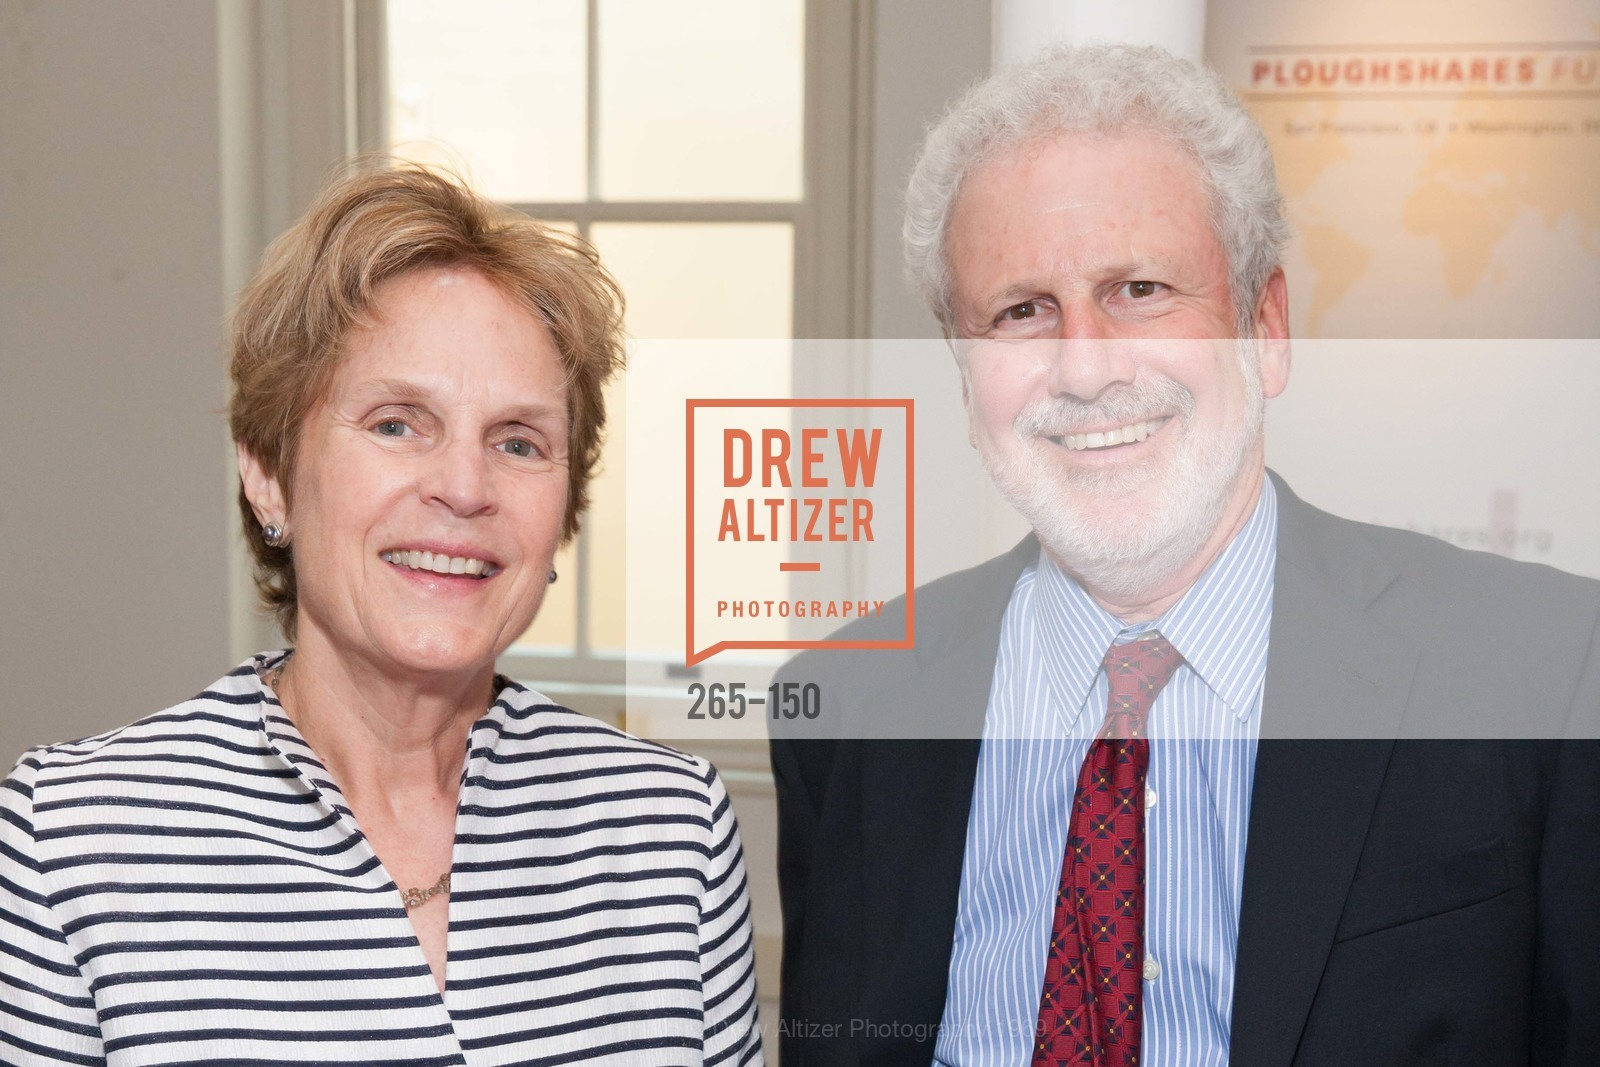 Robin Perry, Philip Taubman, Ploughshares Fund Presenting CHAIN REACTION 2015, The Open Square at Futures Without Violence. 100 Montgomery Street, June 7th, 2015,Drew Altizer, Drew Altizer Photography, full-service agency, private events, San Francisco photographer, photographer california